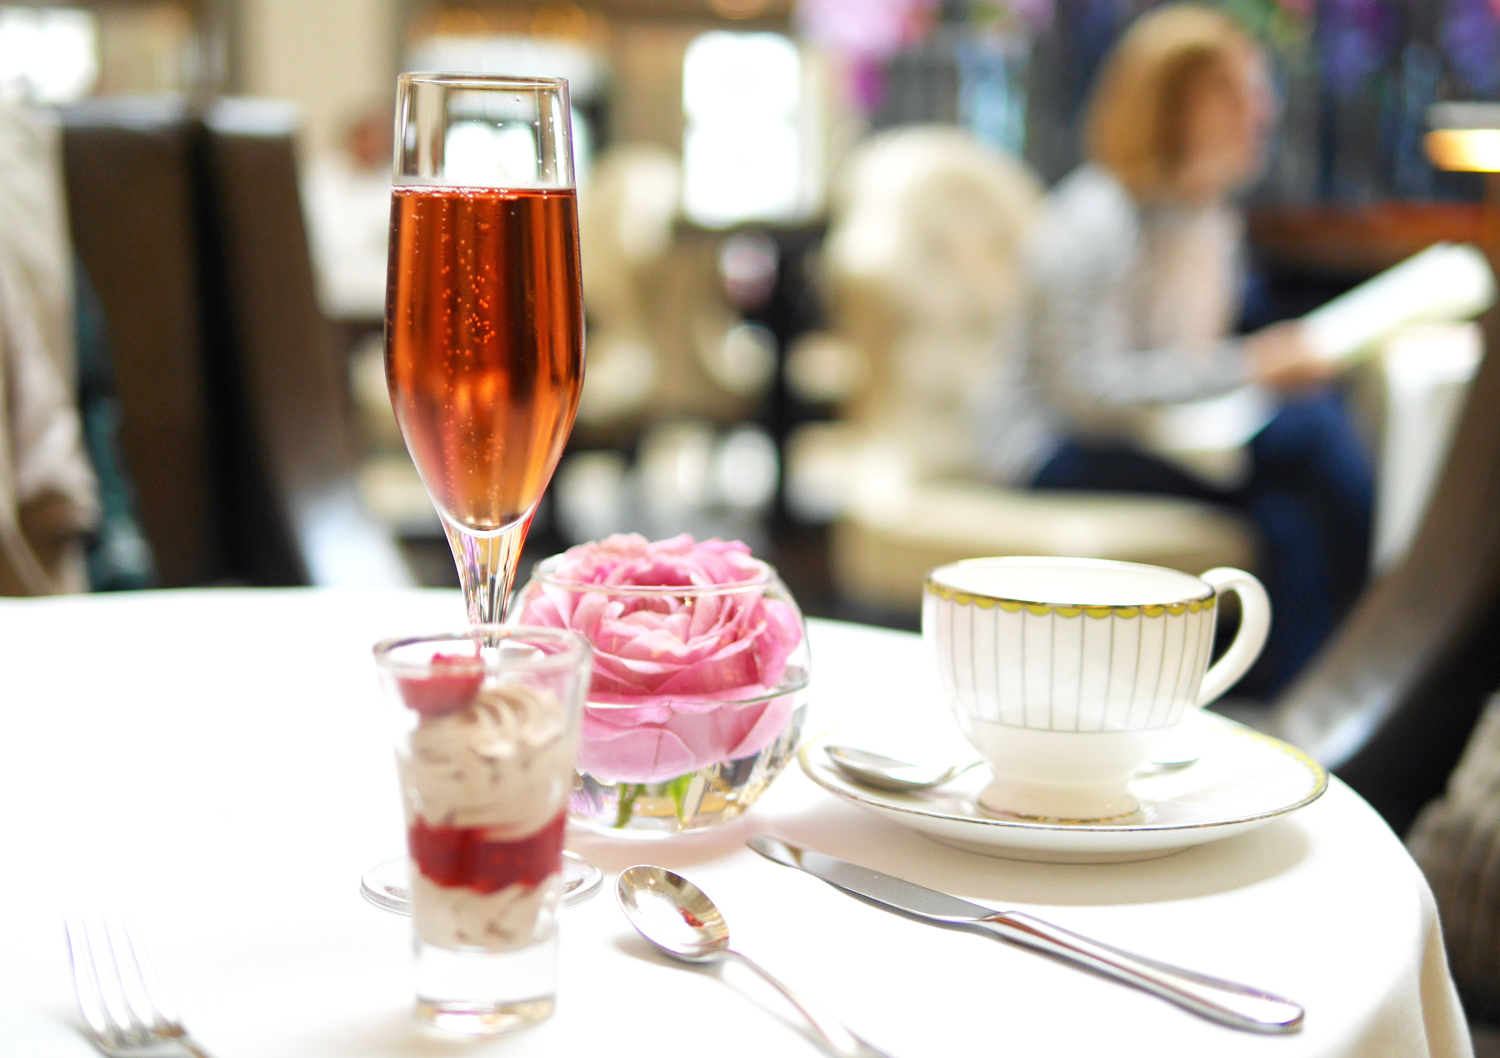 Champagne - Corinthia Hotel London Afternoon Tea